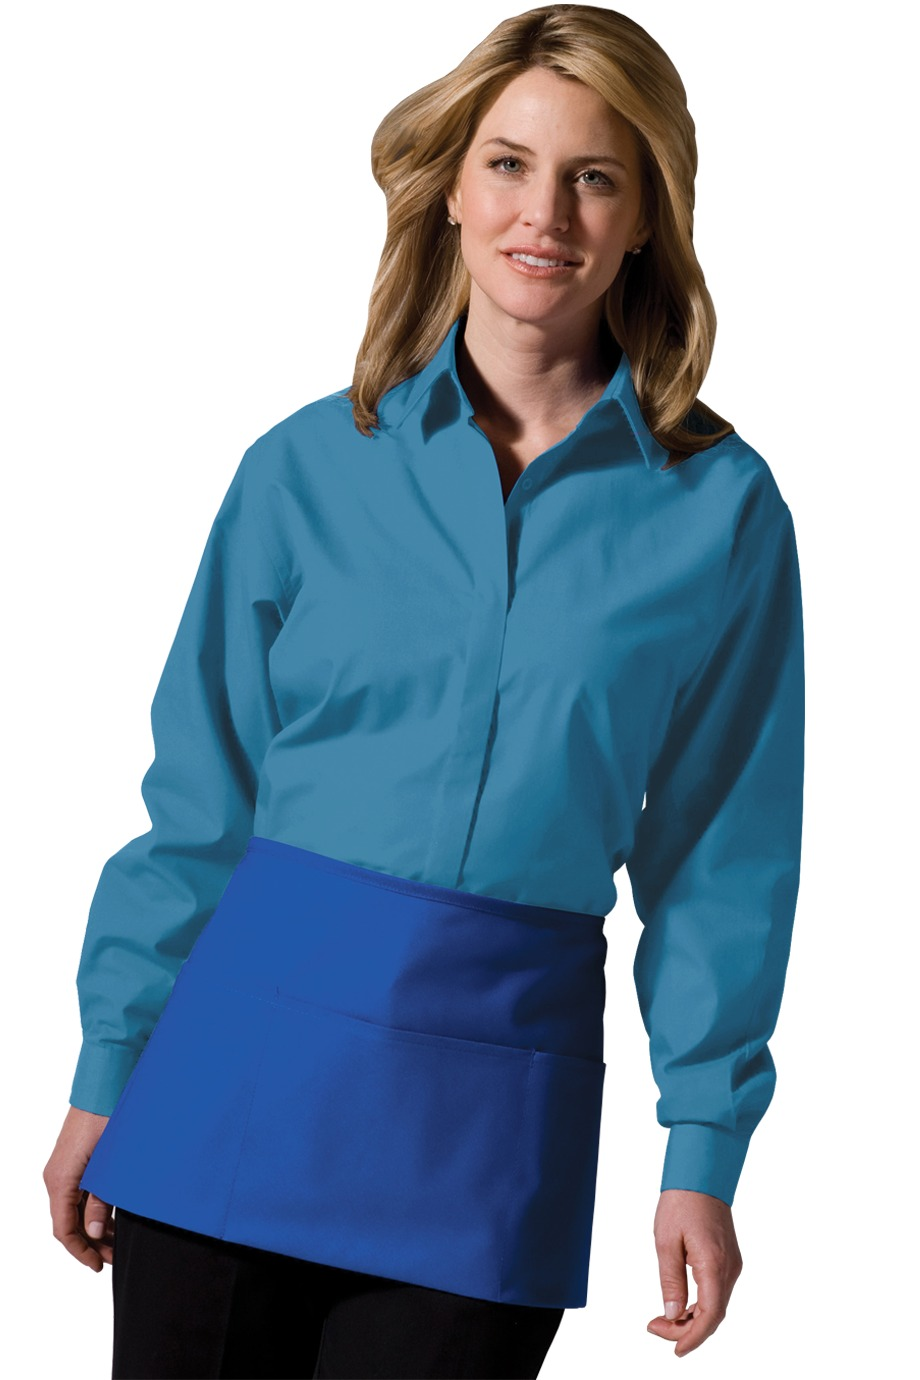 Edwards Garment 5290 - Women's Long Sleeve Cafe Shirt